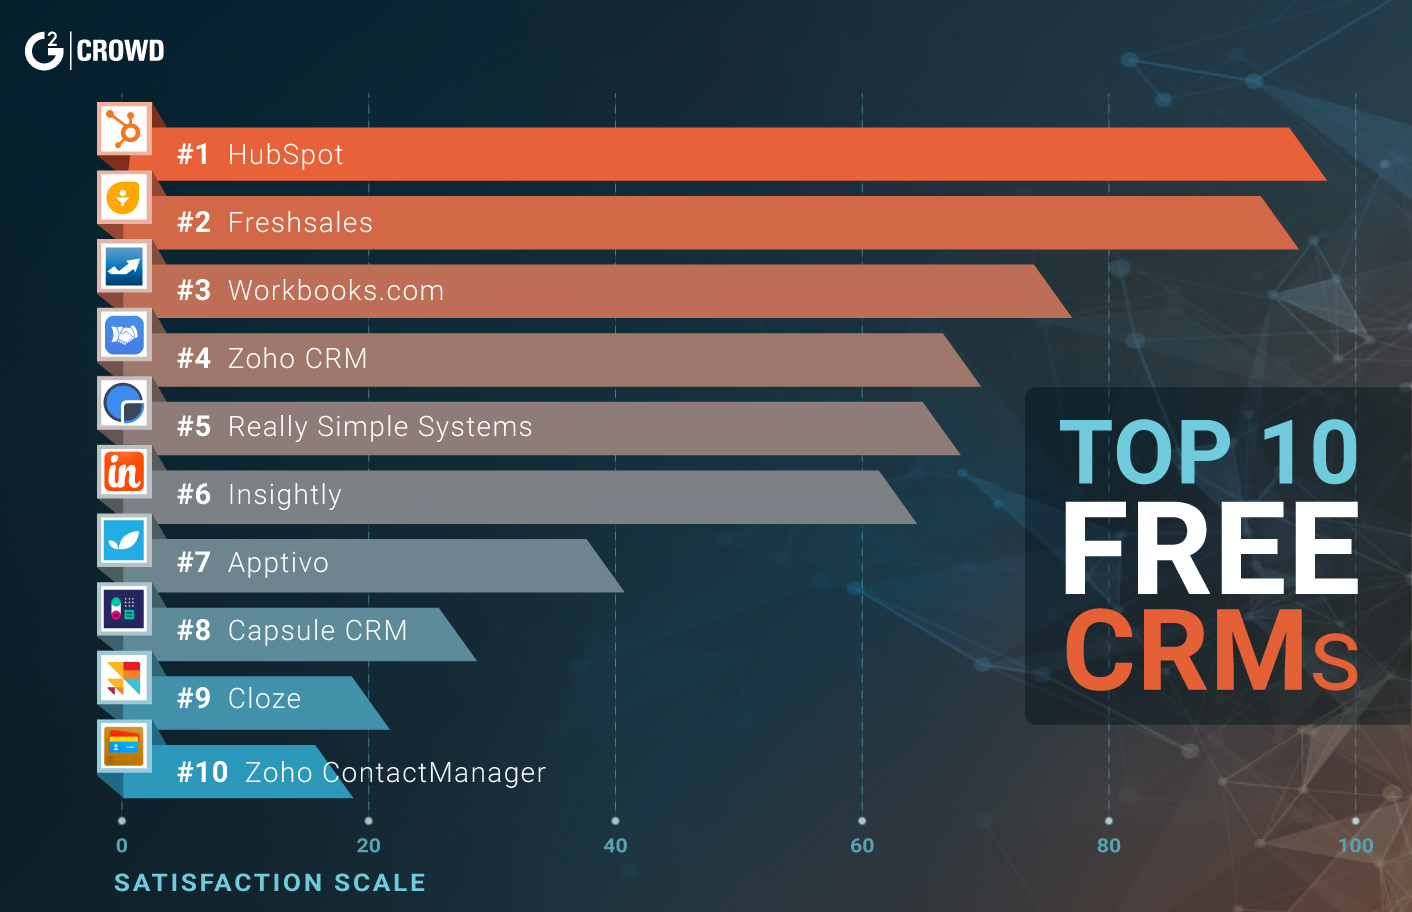 10 Best Free Crm Tools For Businesses  G2 Crowd